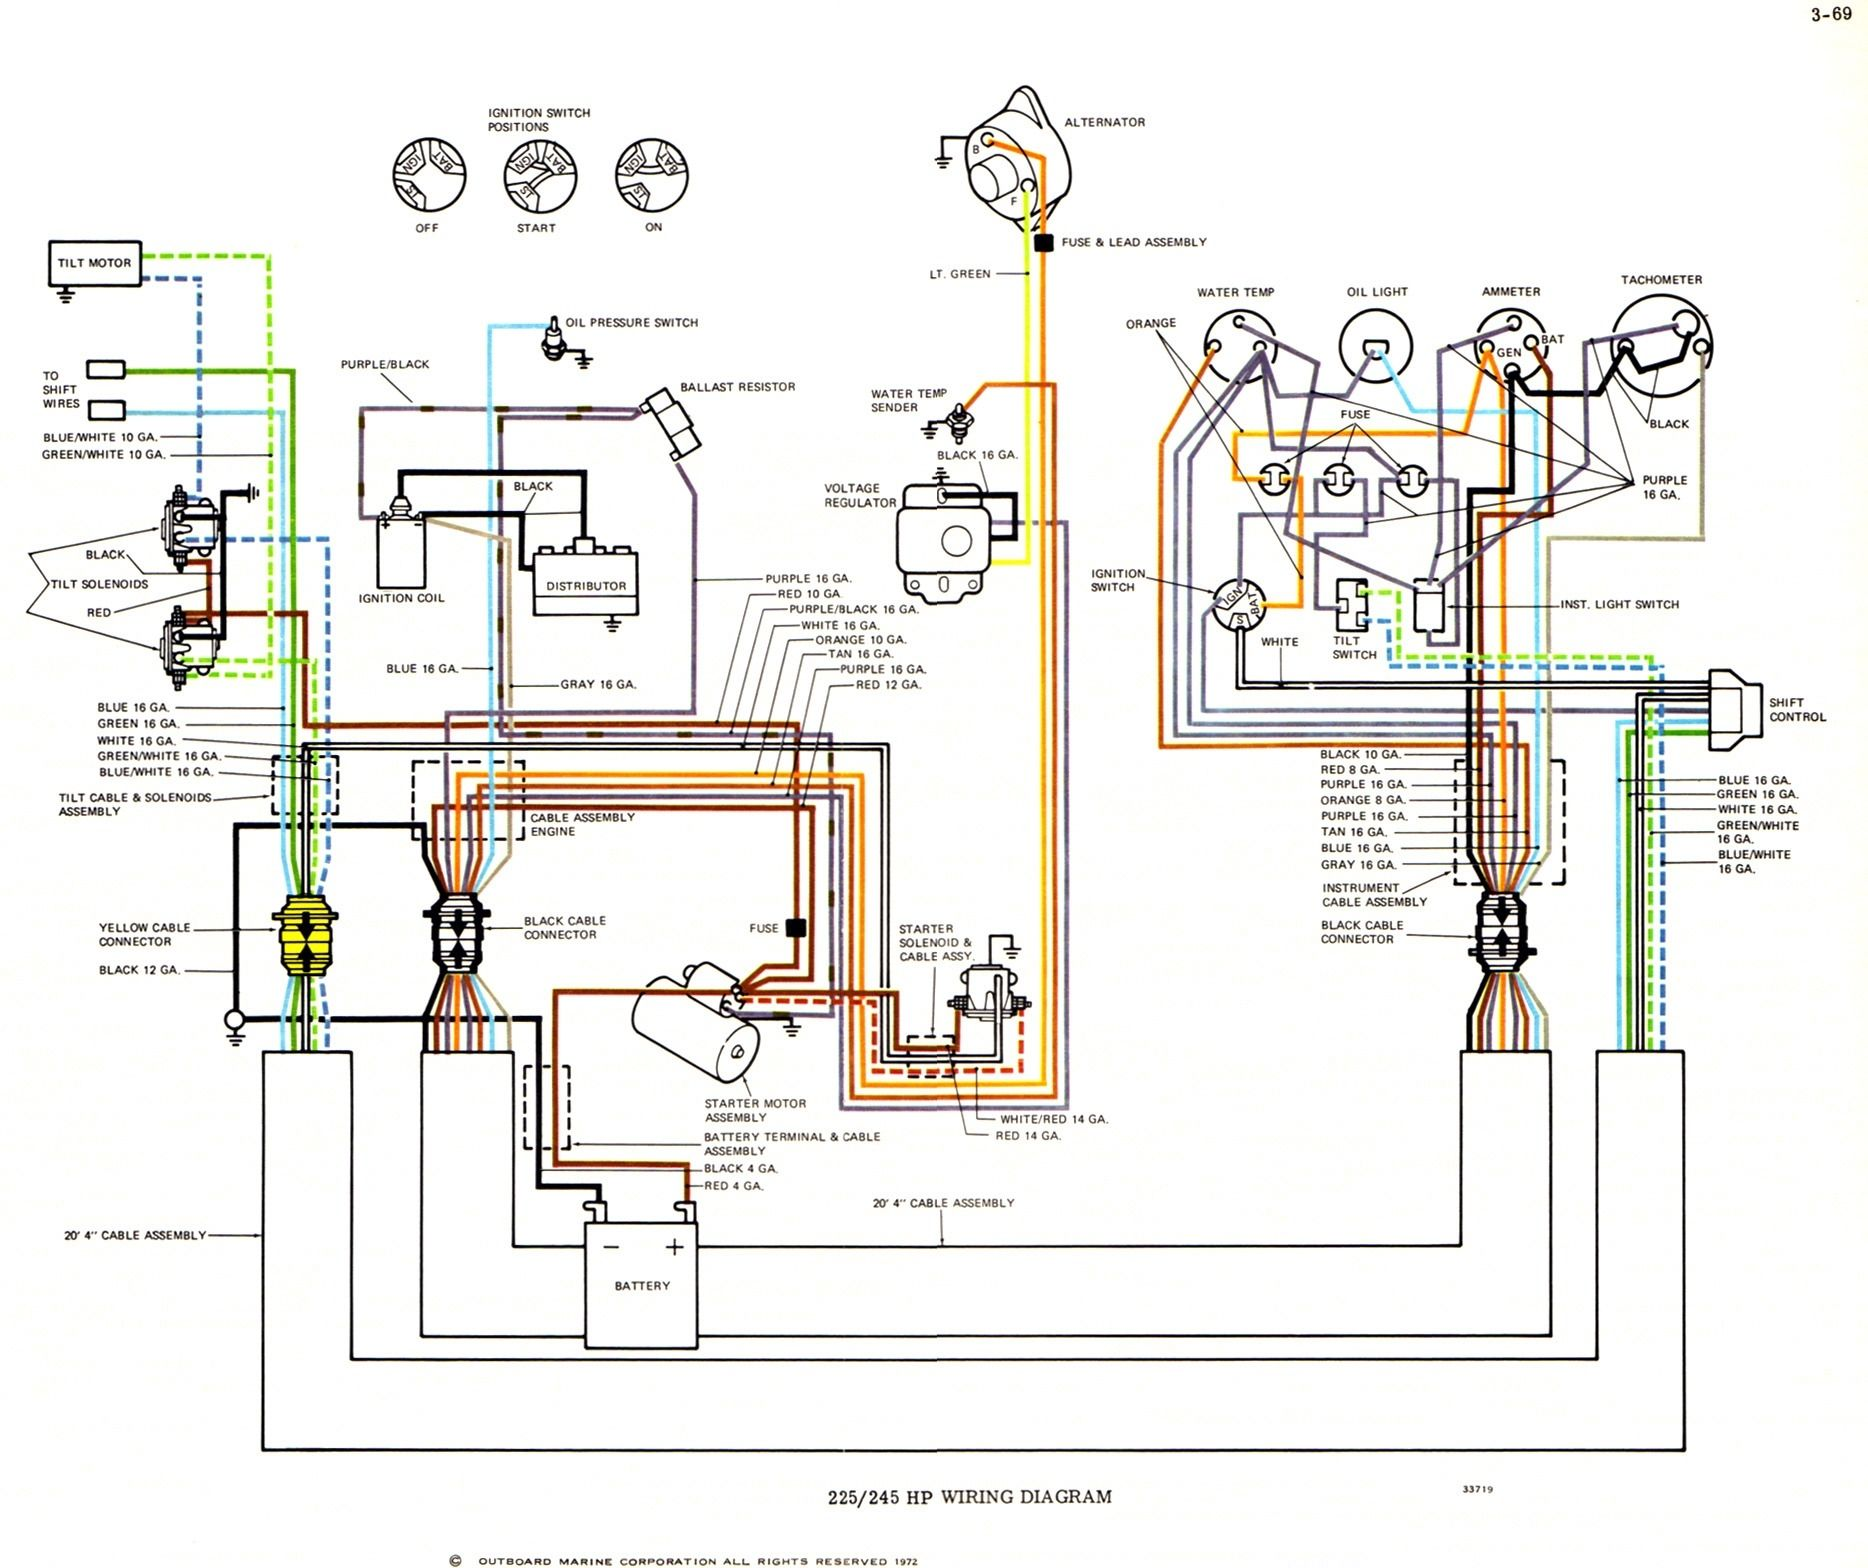 hight resolution of yamaha boat wiring wiring diagram expert yamaha 115 outboard electrical schematic yamaha outboard electrical wiring diagram